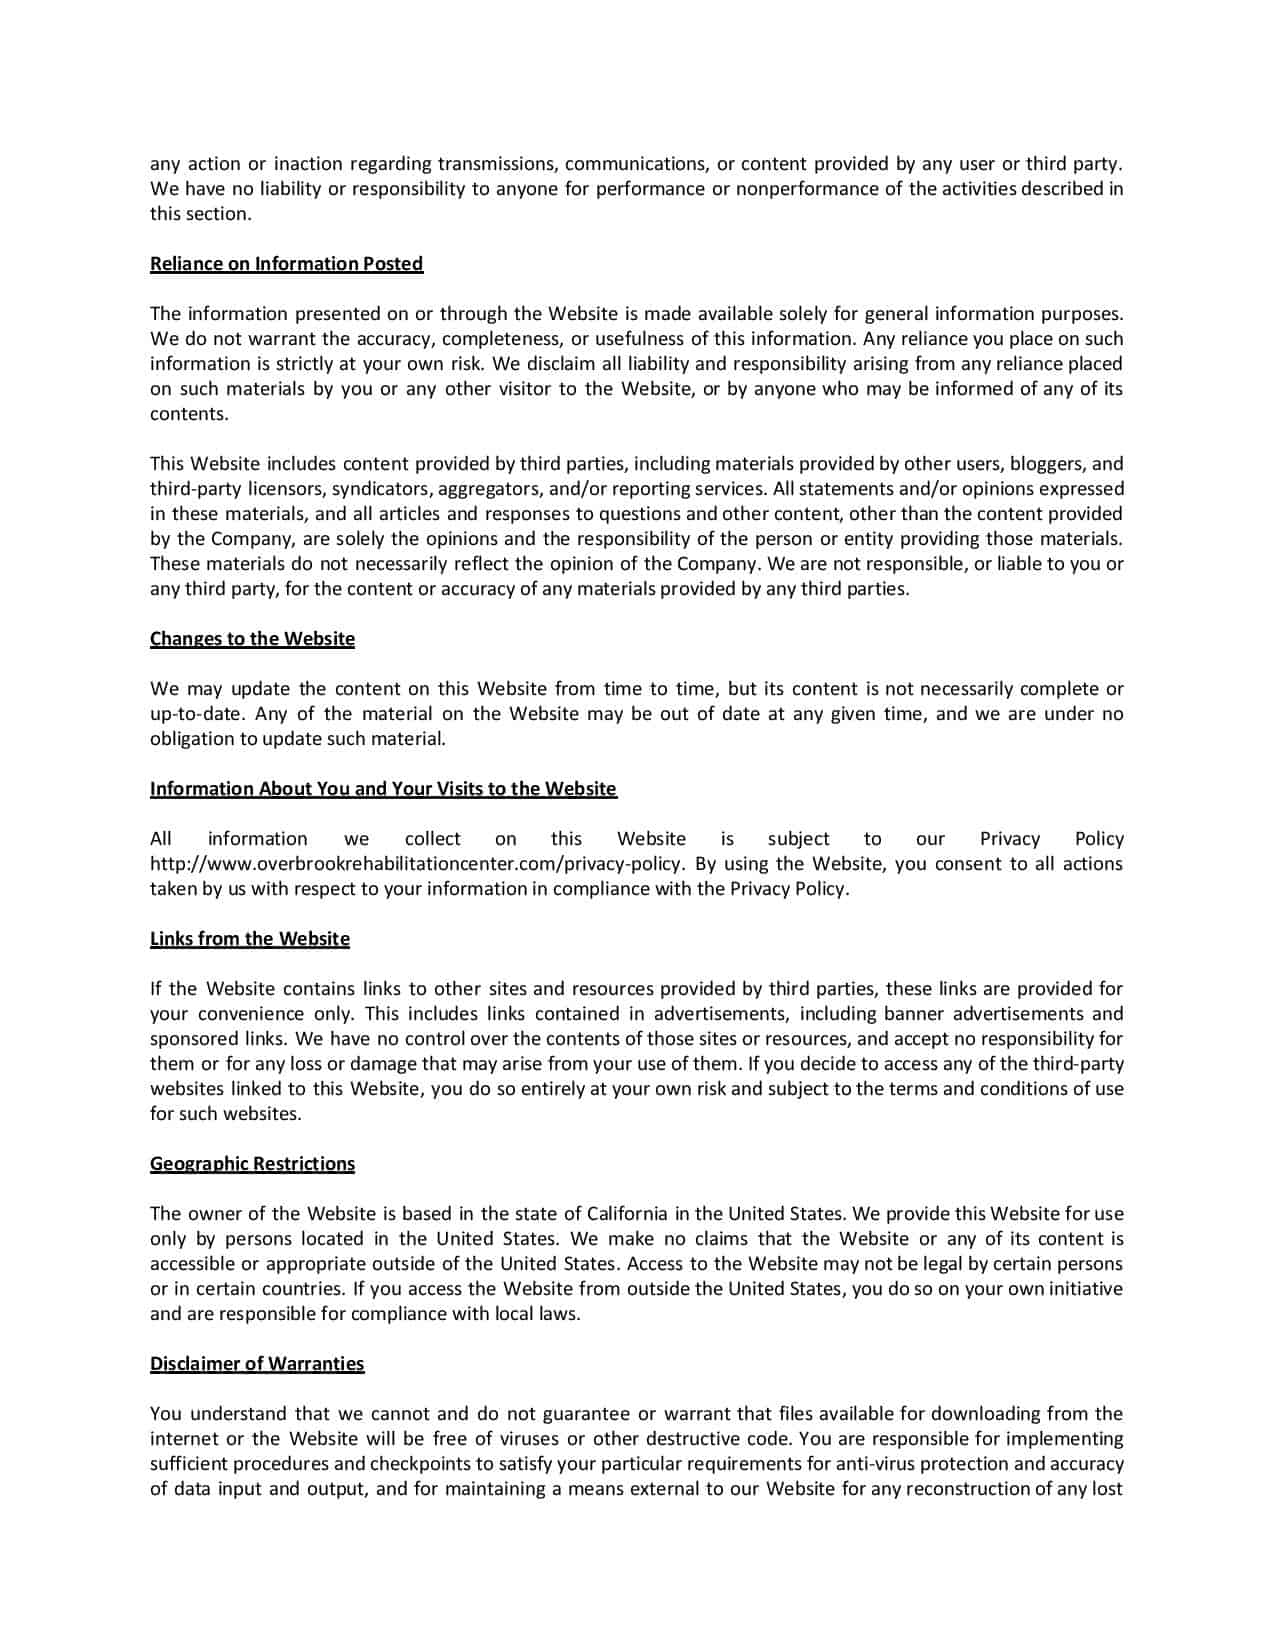 overbrookrehabilitationcenter Terms of Use-page-004